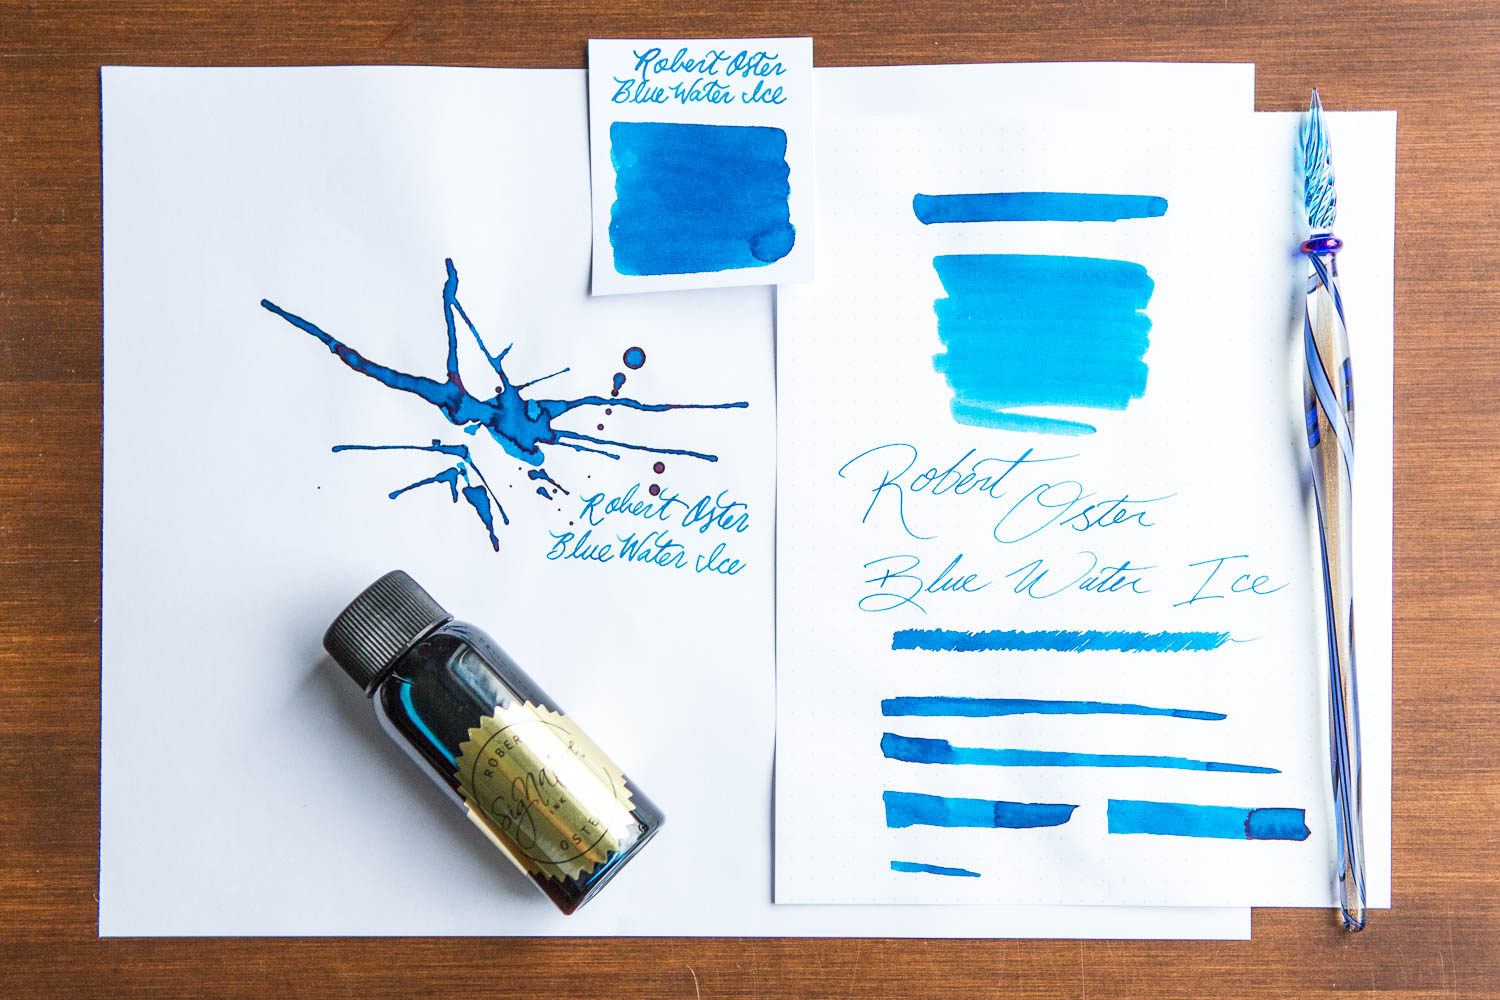 Robert Oster Blue Water Ice - 50ml Bottled Ink